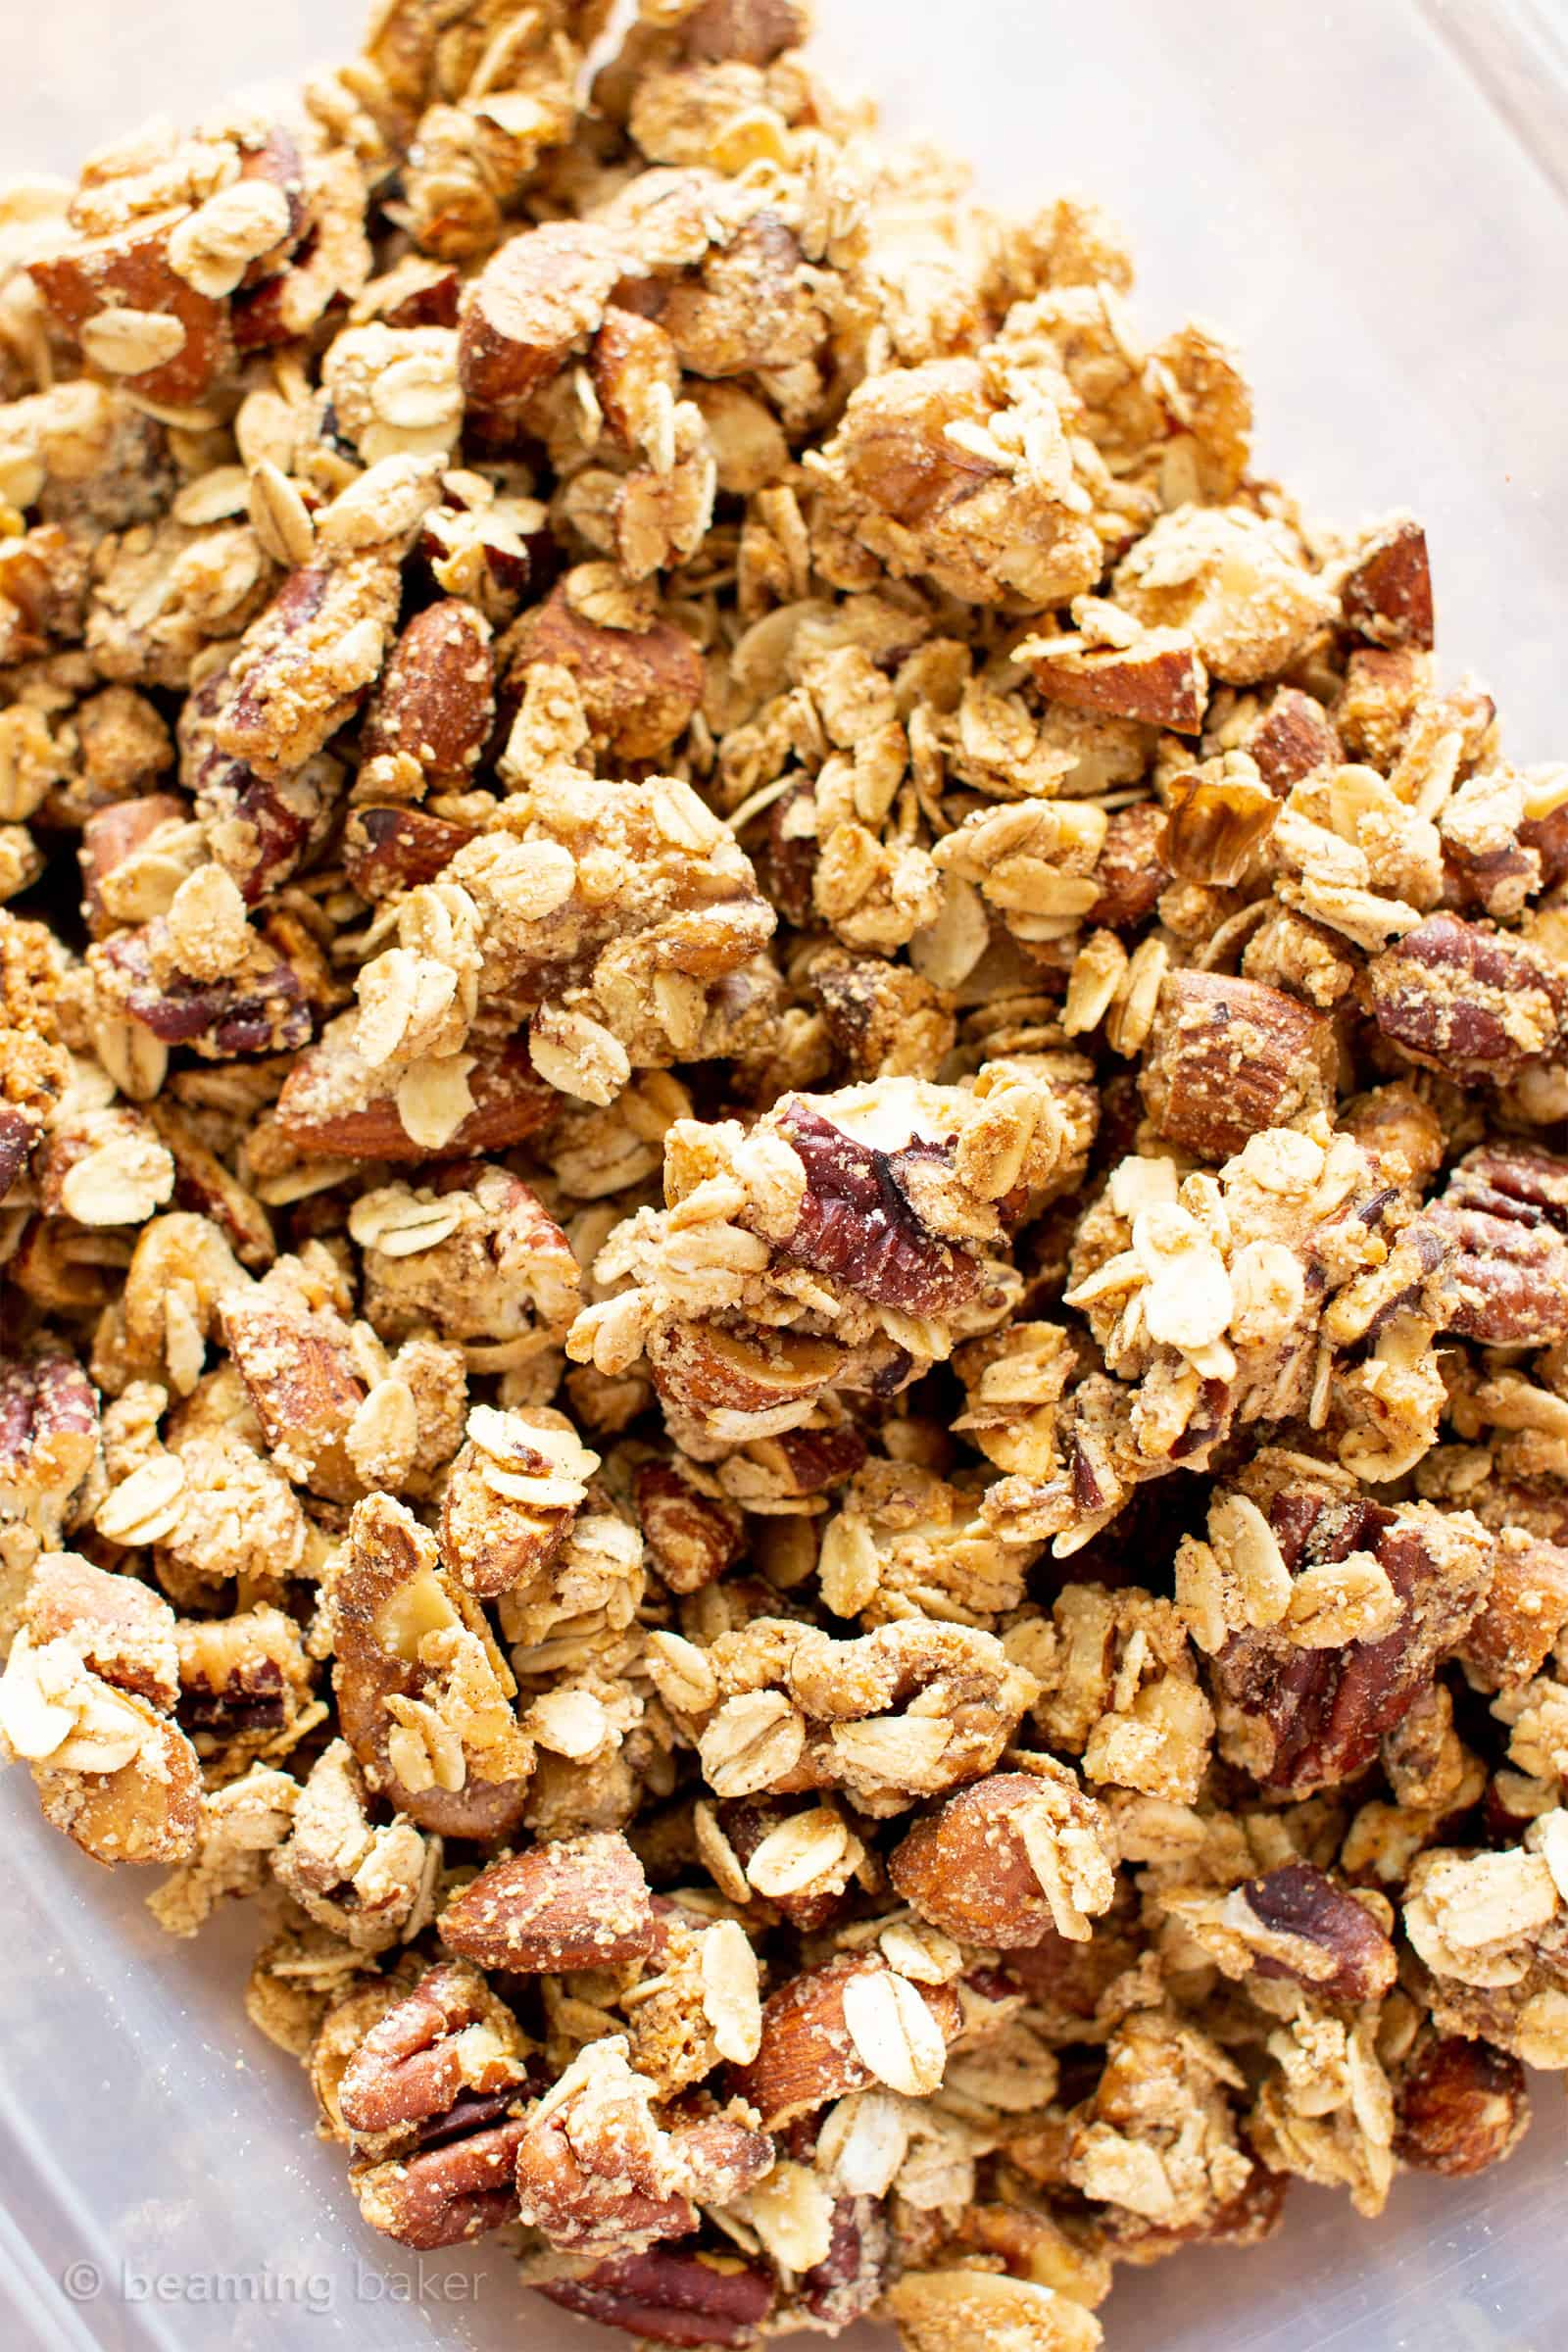 4 Ingredient Healthy Homemade Gluten Free Vegan Granola Recipe (V, GF): a crispy homemade granola recipe made in just a few minutes of prep time, packed full of your favorite nuts and oats. #Vegan #Granola #GlutenFree #Healthy #Snacks | Recipe at BeamingBaker.com